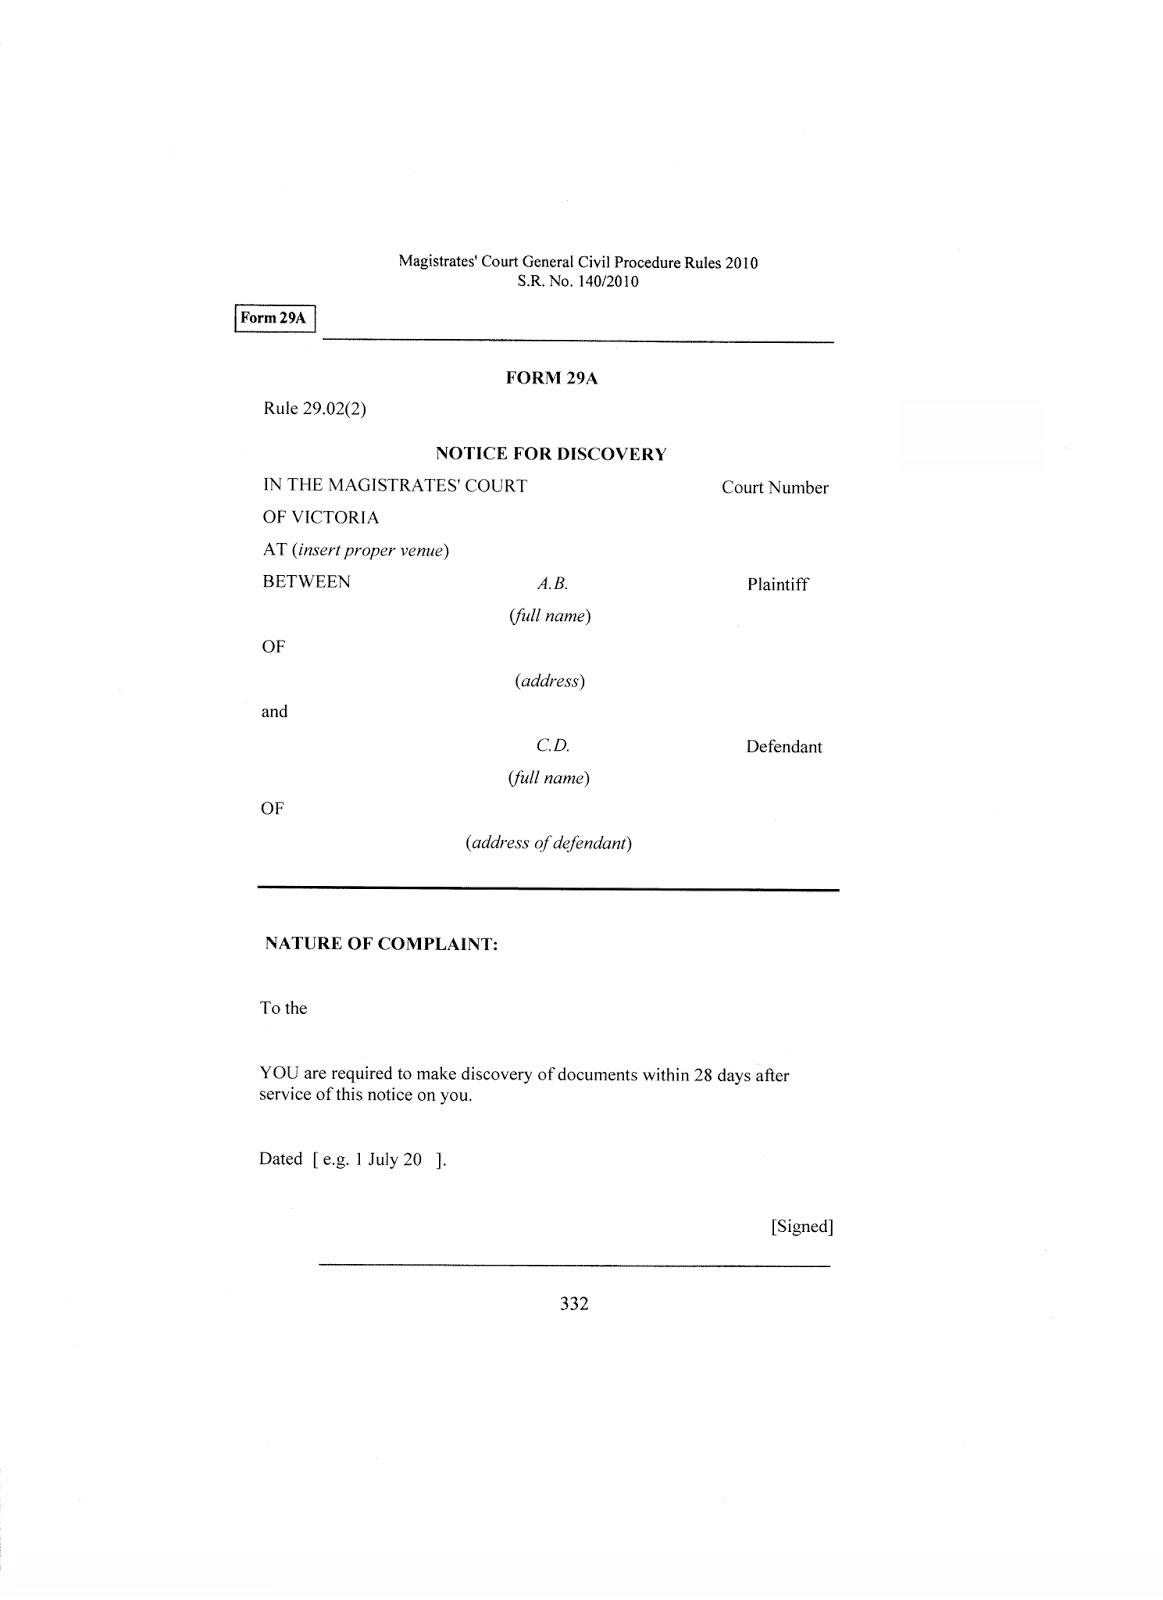 Stunning Federal Court Complaint Template Photos - Entry Level ...